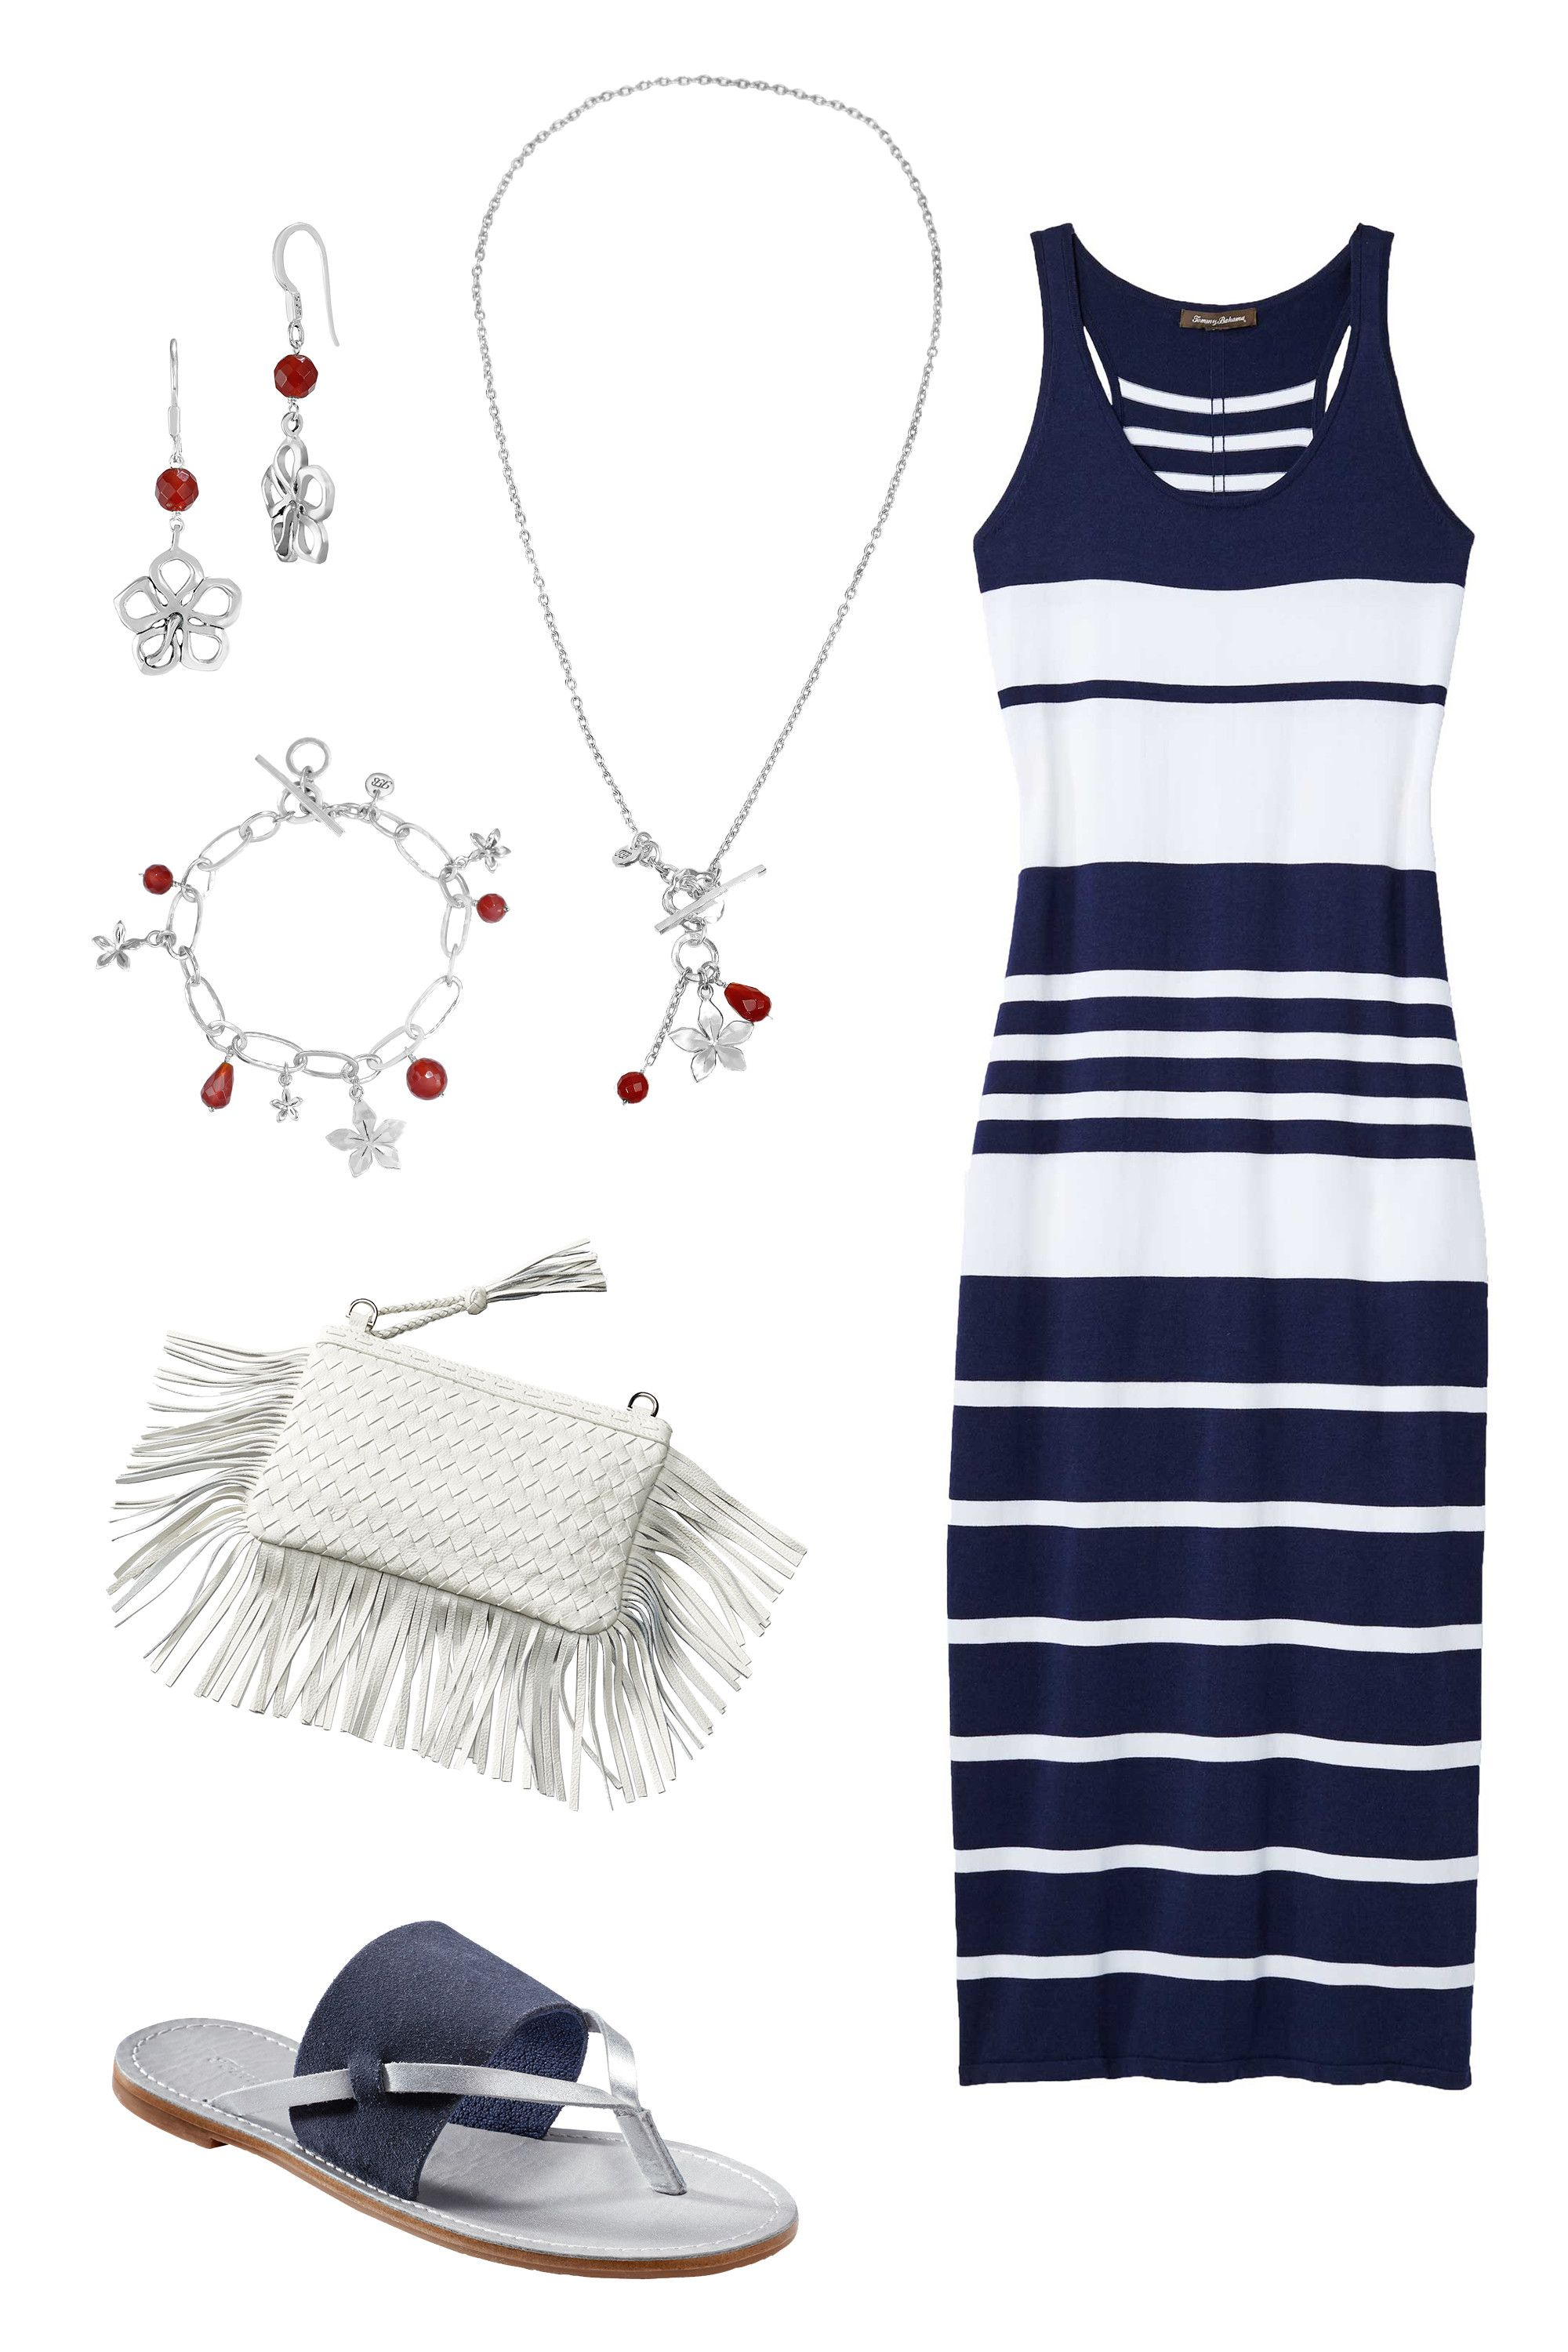 """<p>Nautical stripes are a natural fit for a day by the beach. Add a fringe clutch, navy sandals, and metallic touches for a polished coastal look.<br></p><p><br></p><p><em></em><em>Tommy Bahama Open Petal Bead Earrings by Lois Hill, <a href=""""http://www.tommybahama.com/en/Open-Petal-Bead-Earrings-by-Lois-Hill/p/TE1286-FH-14398"""" target=""""_blank"""">$118</a>&#x3B; Flower Bead Cluster Necklace by Lois Hill, <a href=""""http://www.tommybahama.com/en/Flower-Bead-Cluster-Necklace-by-Lois-Hill/p/TN1218-16-14398"""" target=""""_blank"""">$168</a><span class=""""redactor-invisible-space"""">&#x3B; </span></em><em>Pickford Striped Maxi Dress, <a href=""""http://www.tommybahama.com/en/c/en/Pickford-Striped-Maxi-Dress/p/TW613119-12762"""" target=""""_blank"""">$158</a>&#x3B; Penelohpe Leather Sandals, <a href=""""http://www.tommybahama.com/en/Penelohpe-Leather-Sandals/p/TFW00206-5824"""" target=""""_blank"""">$88</a>&#x3B; Fringe Clutch, <a href=""""http://www.tommybahama.com/en/Fringe-Clutch/p/THW744792-033"""" target=""""_blank"""">$138</a>&#x3B; Open Link Bracelet by Lois Hill, <a href=""""http://www.tommybahama.com/en/Open-Link-Bracelet-by-Lois-Hill/p/TB1082-BR-14398"""" target=""""_blank"""">$198</a><a href=""""http://www.tommybahama.com/en/Open-Link-Bracelet-by-Lois-Hill/p/TB1082-BR-14398""""></a></em><span class=""""redactor-invisible-space""""></span><br></p>"""